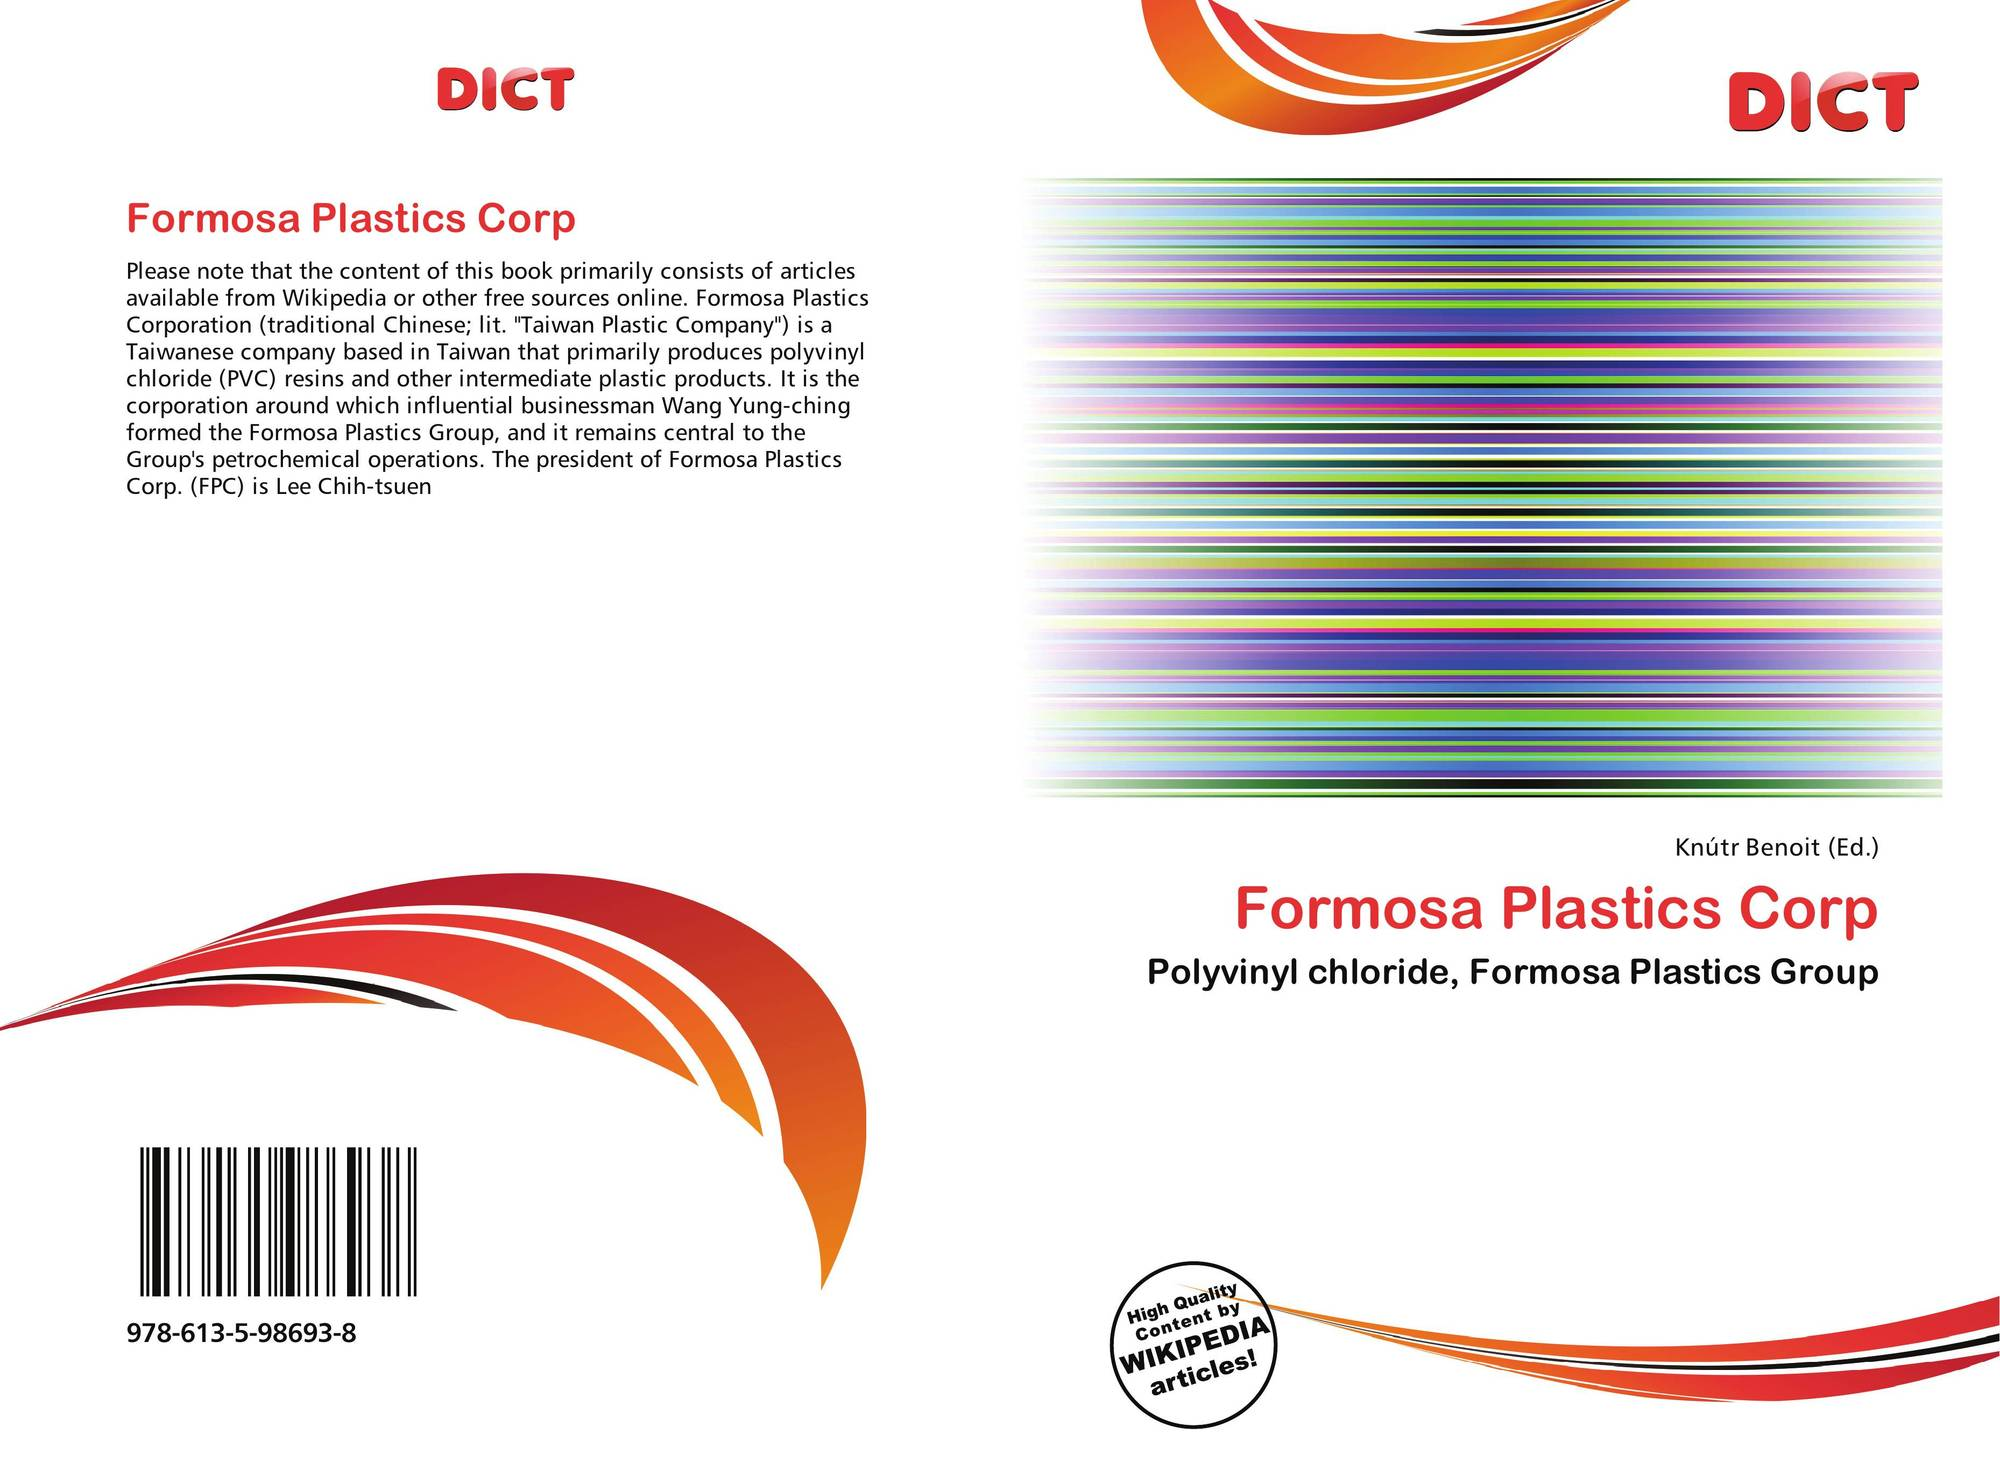 case 25 3 formosa plastics group relating uncontrollable factors Accounting: texts and cases: text and cases 13th edition texts and cases: text and cases 13th edition case 25-3: formosa plastics group: 799 (8.